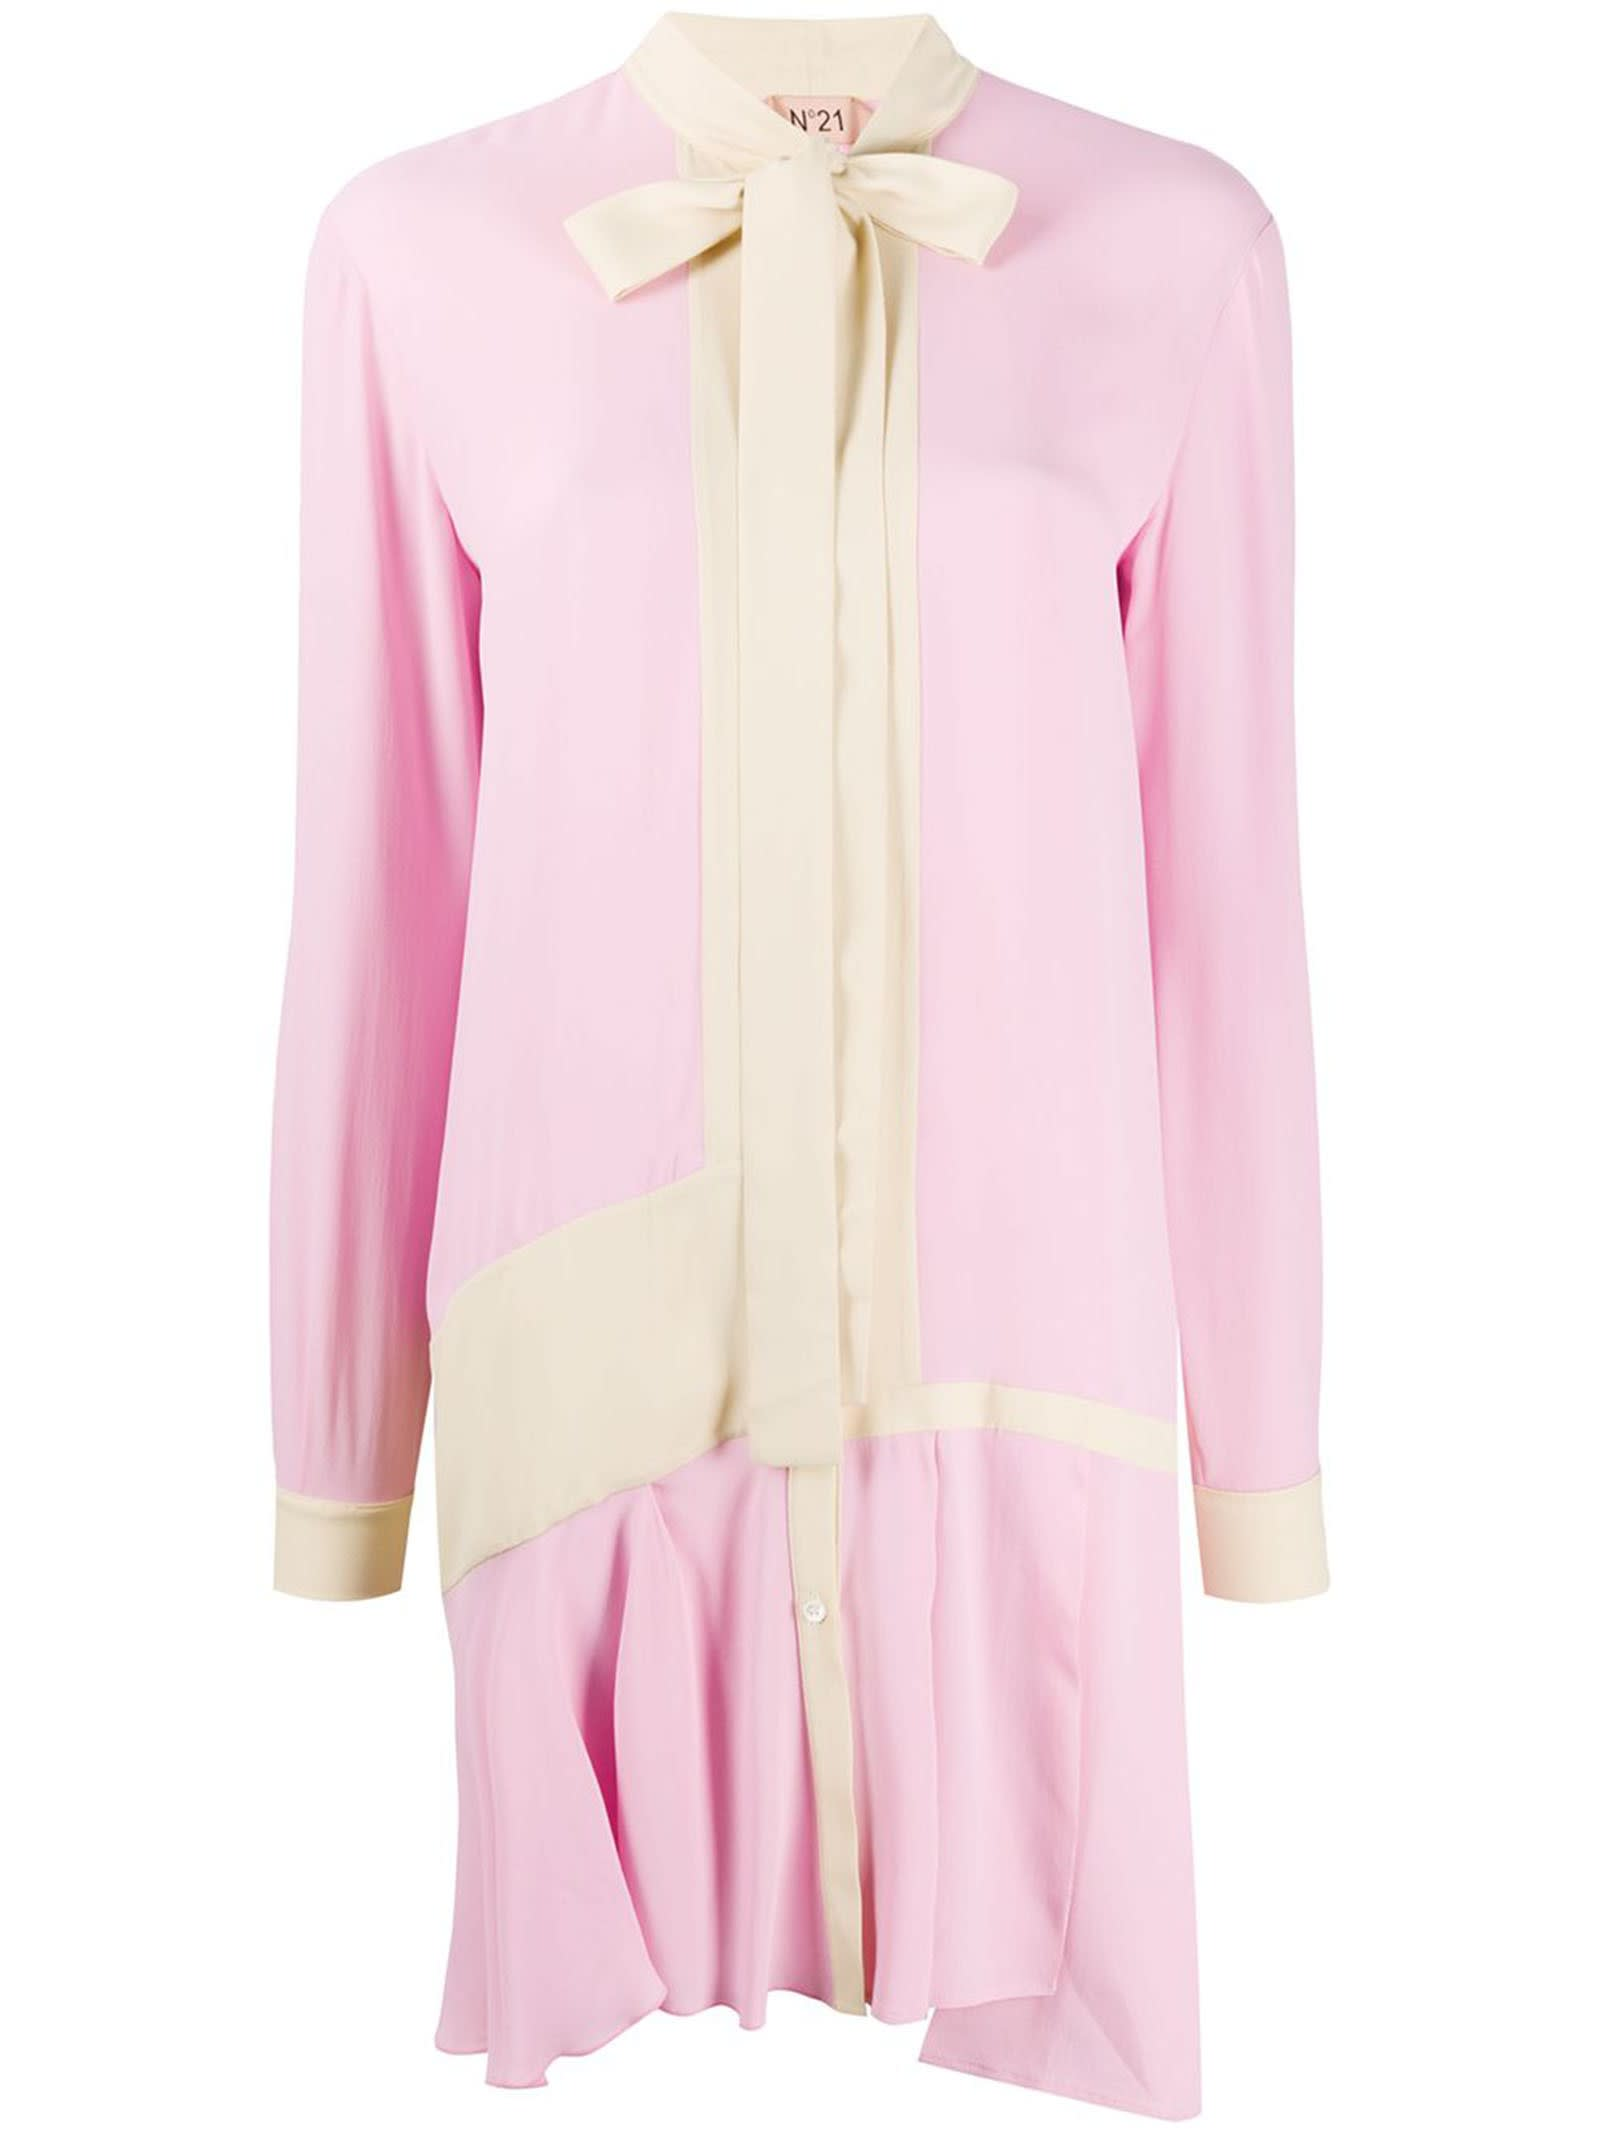 Buy N°21 Contrast Panerl Shirt Dress online, shop N.21 with free shipping